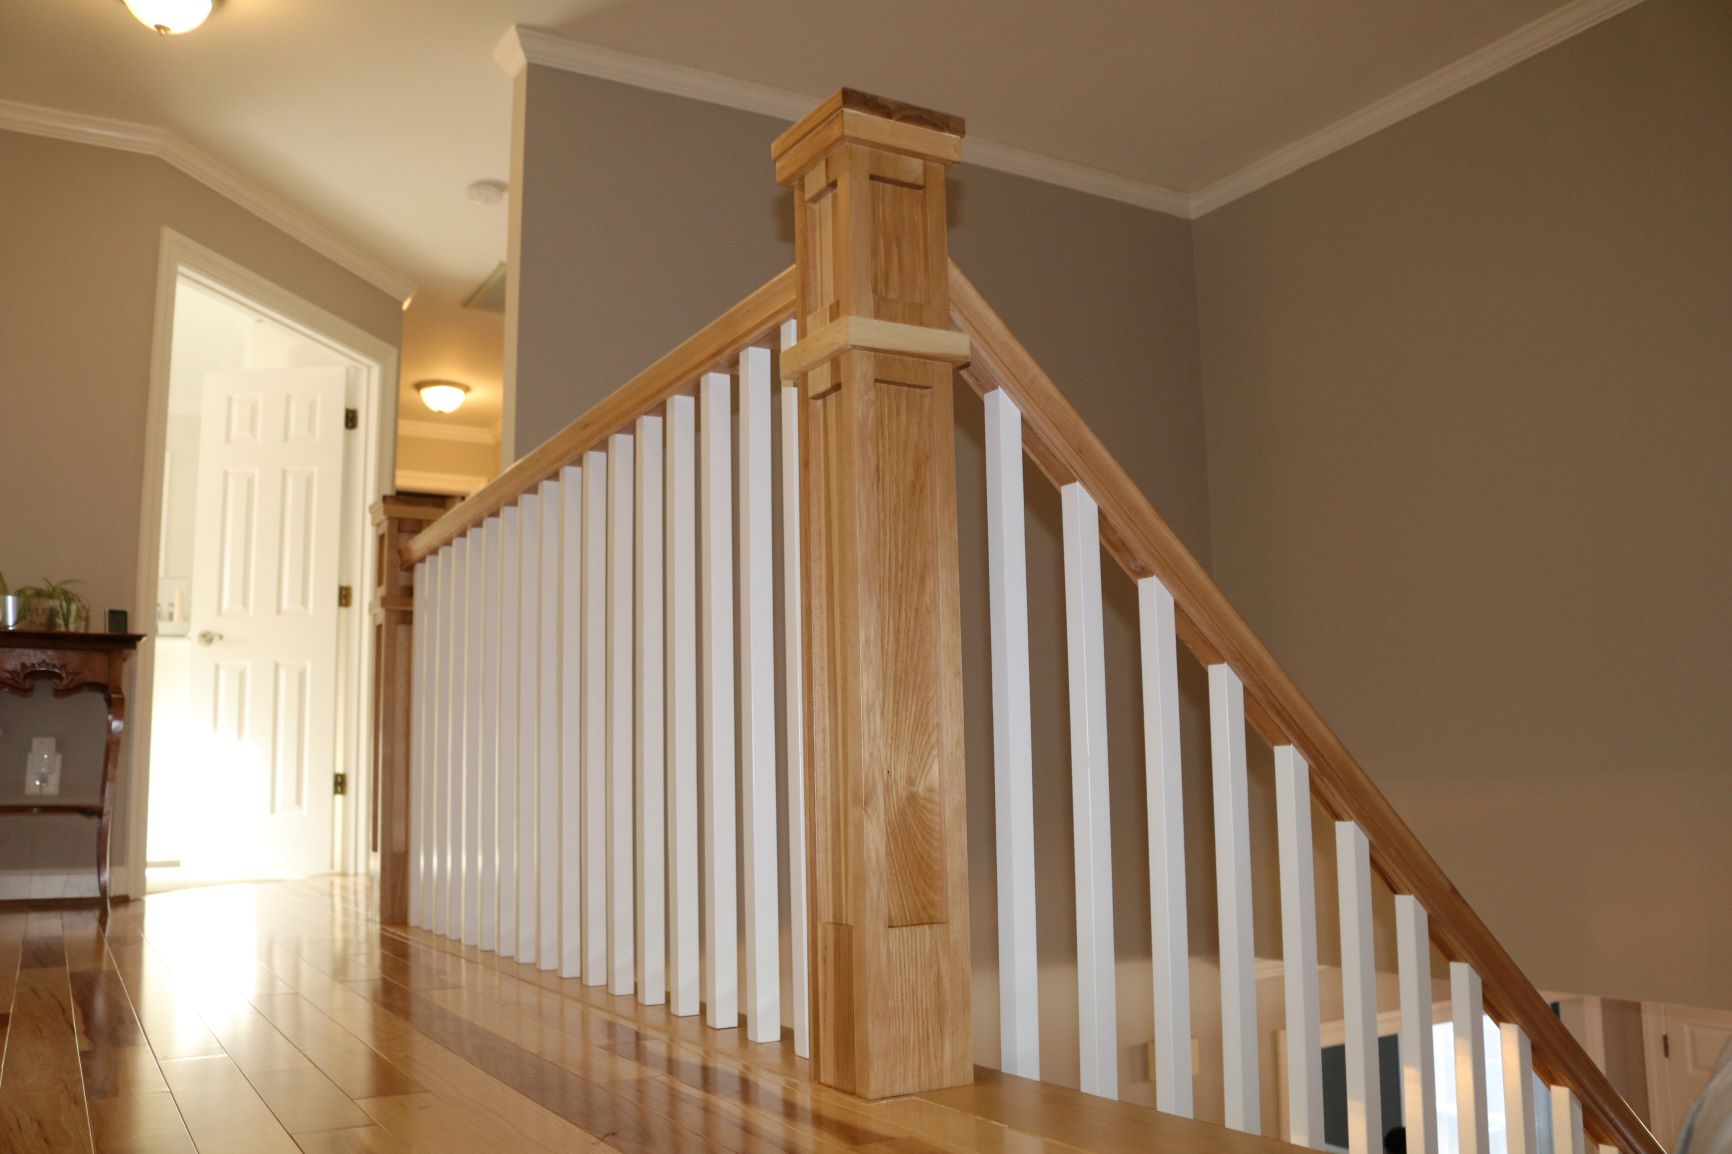 HickoryStairs-Full Remodel-ArlingtonVA